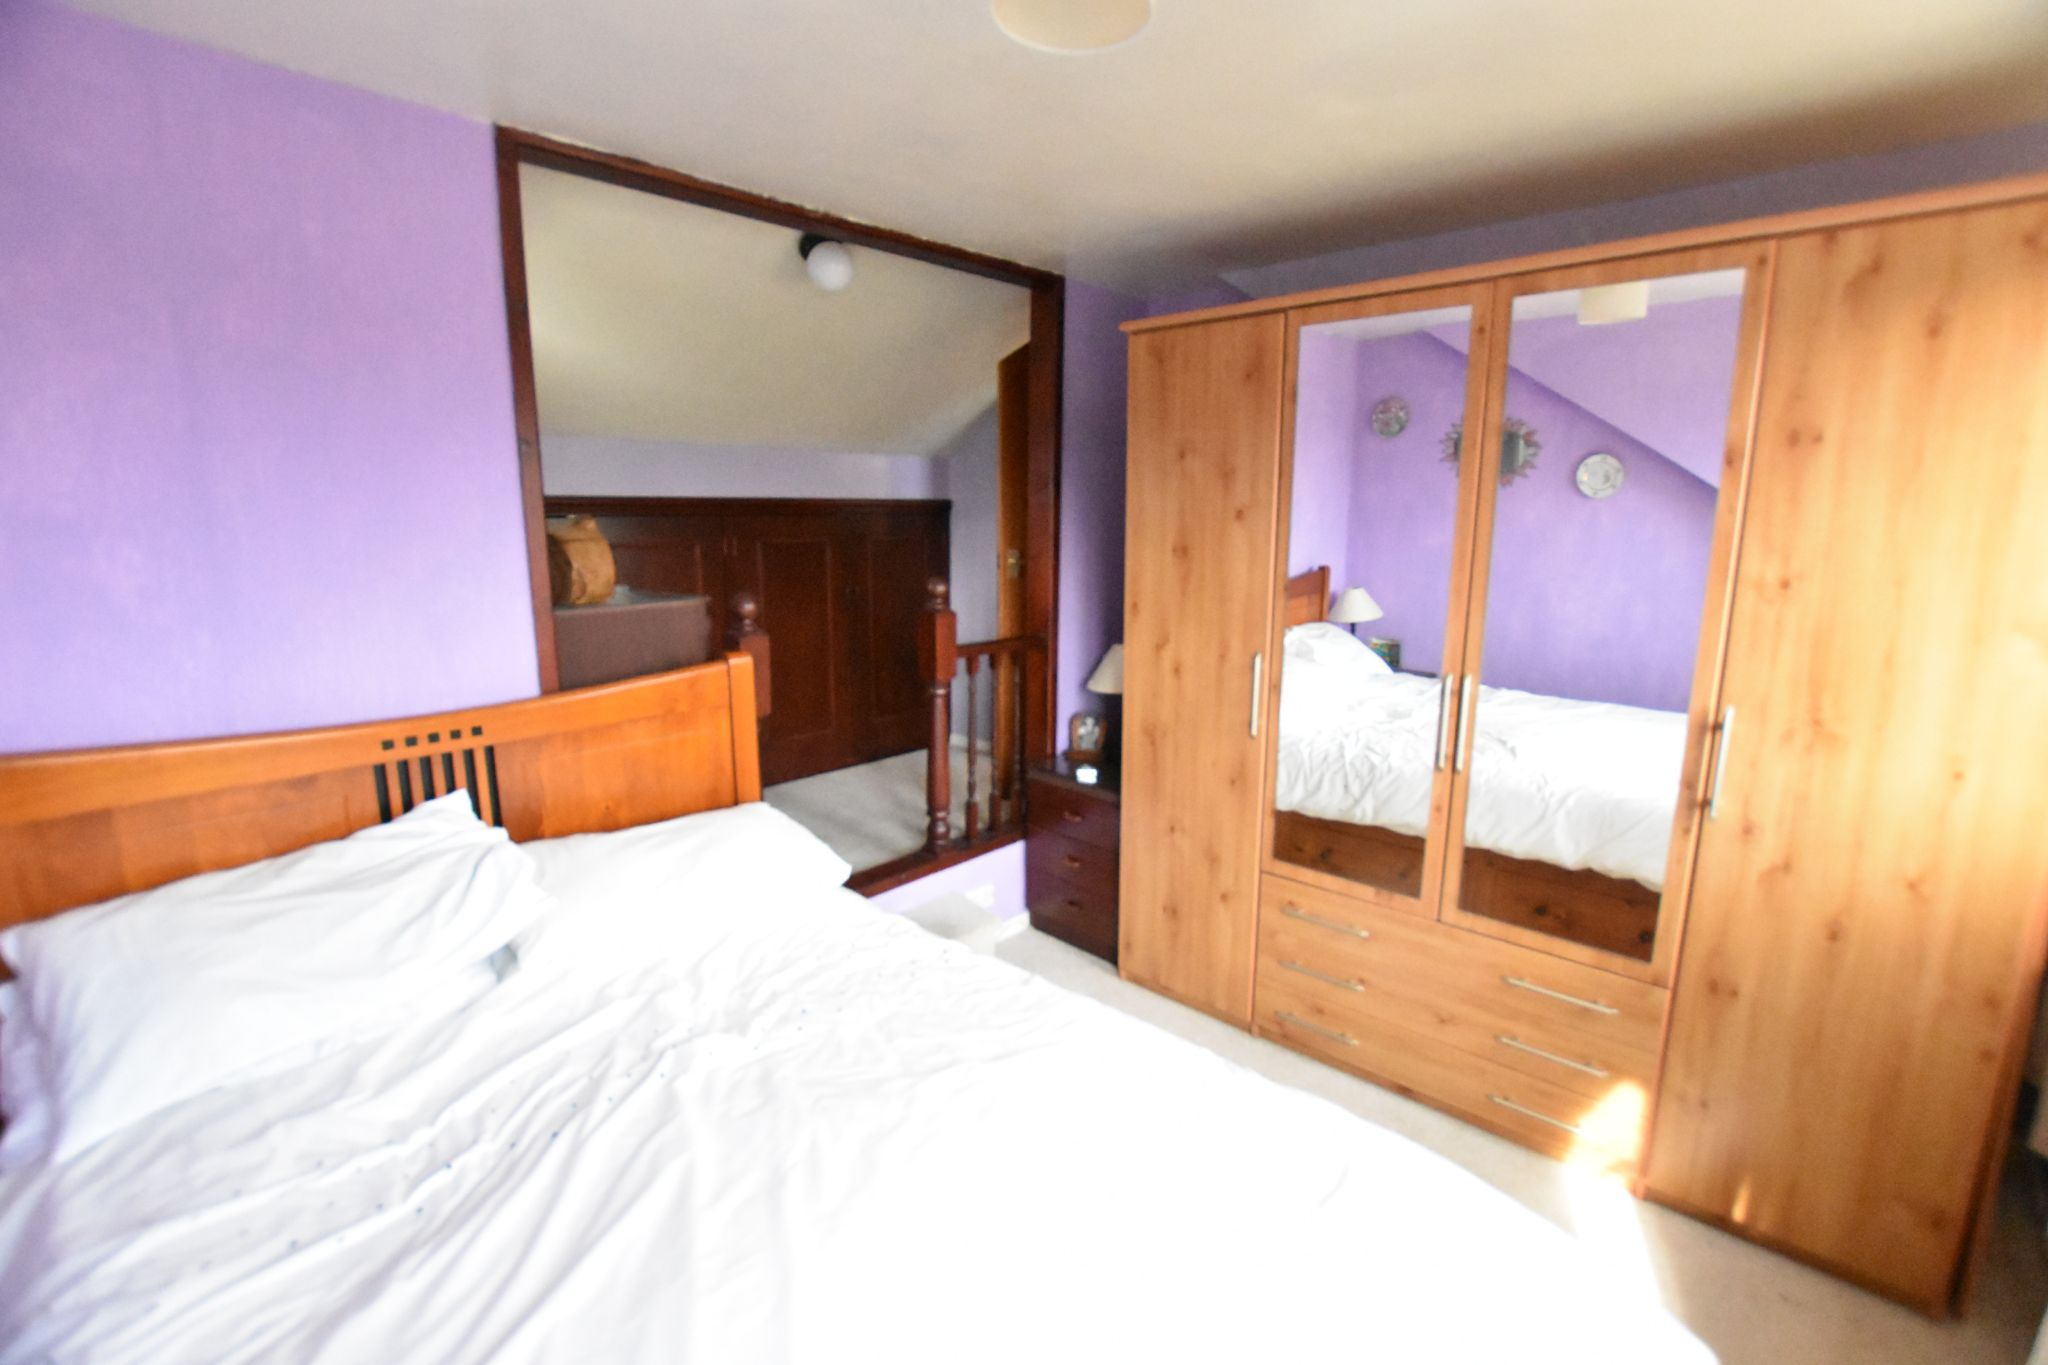 Image 3 of 4 of BEDROOM 2, on Accommodation Comprising for